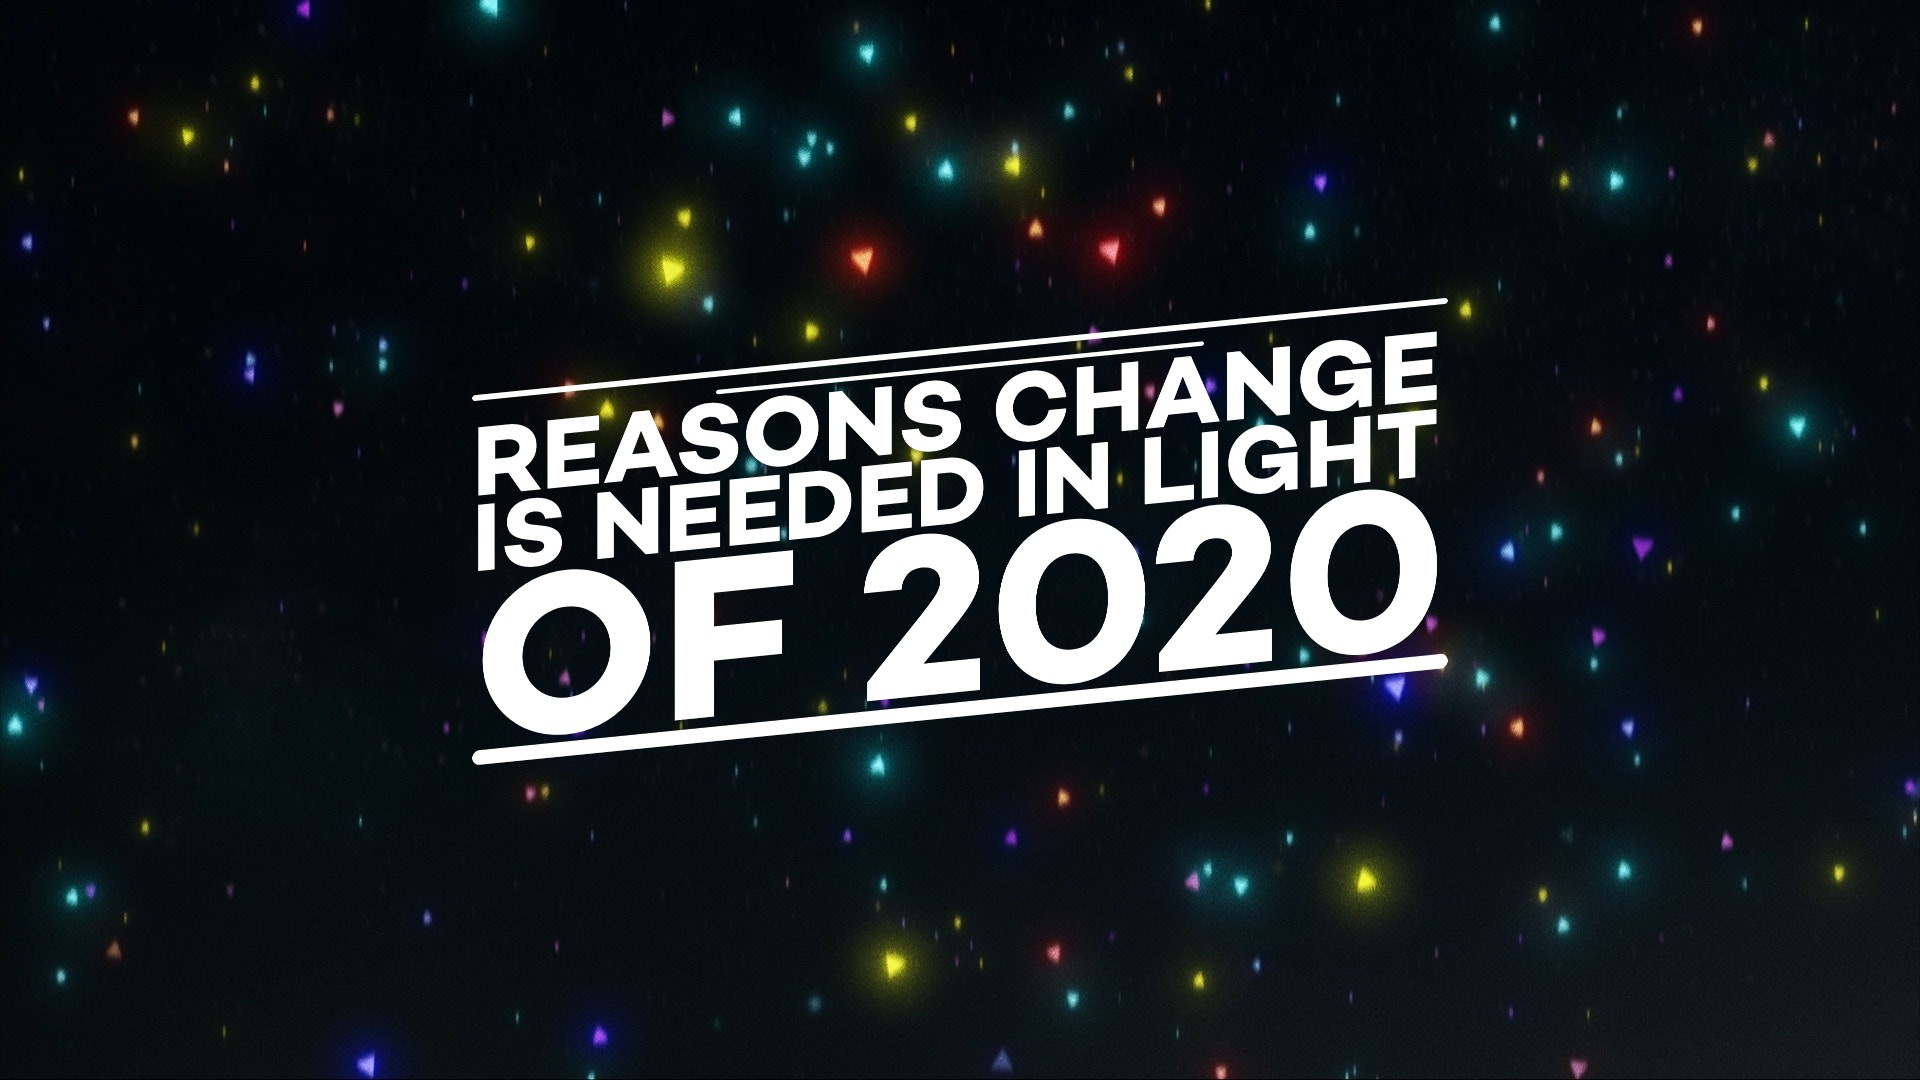 Reasons Change is Needed in Light of 2020